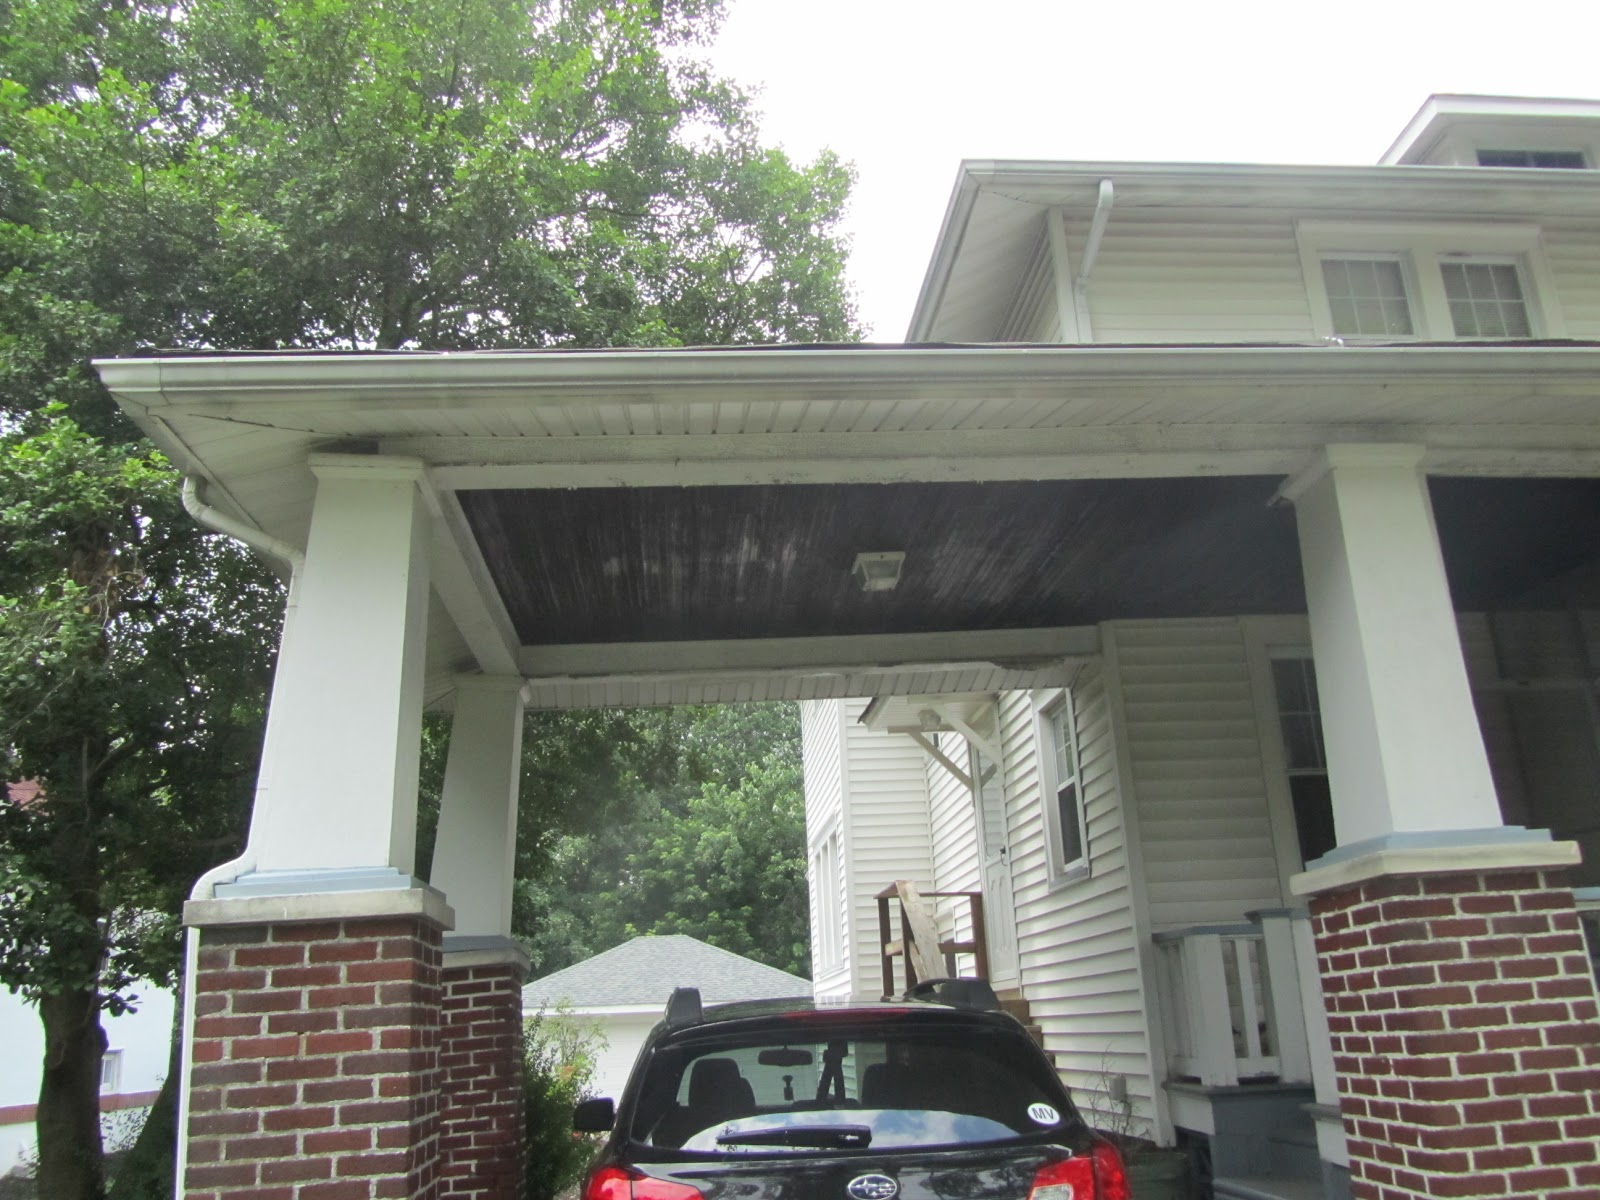 Our 39 new 39 to us 1910 foursquare home carport brick piers for Brick carport